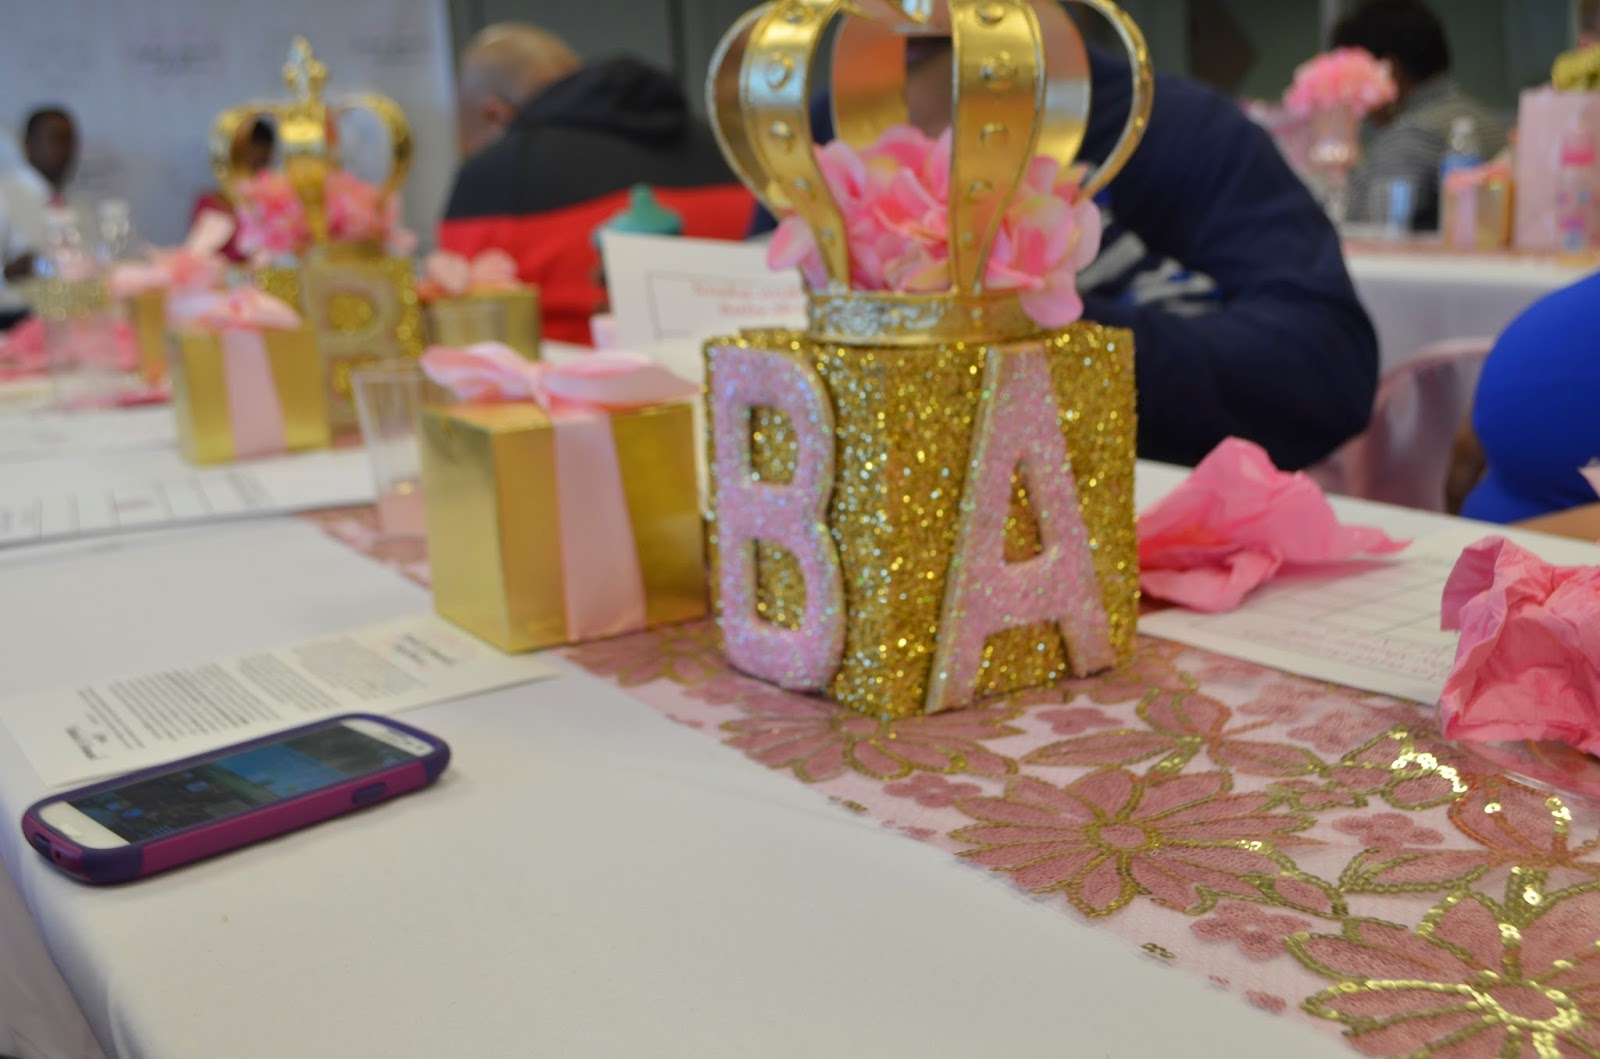 Baby Shower Ideas In Pink And Gold for all things creative!: my pink & gold baby shower!